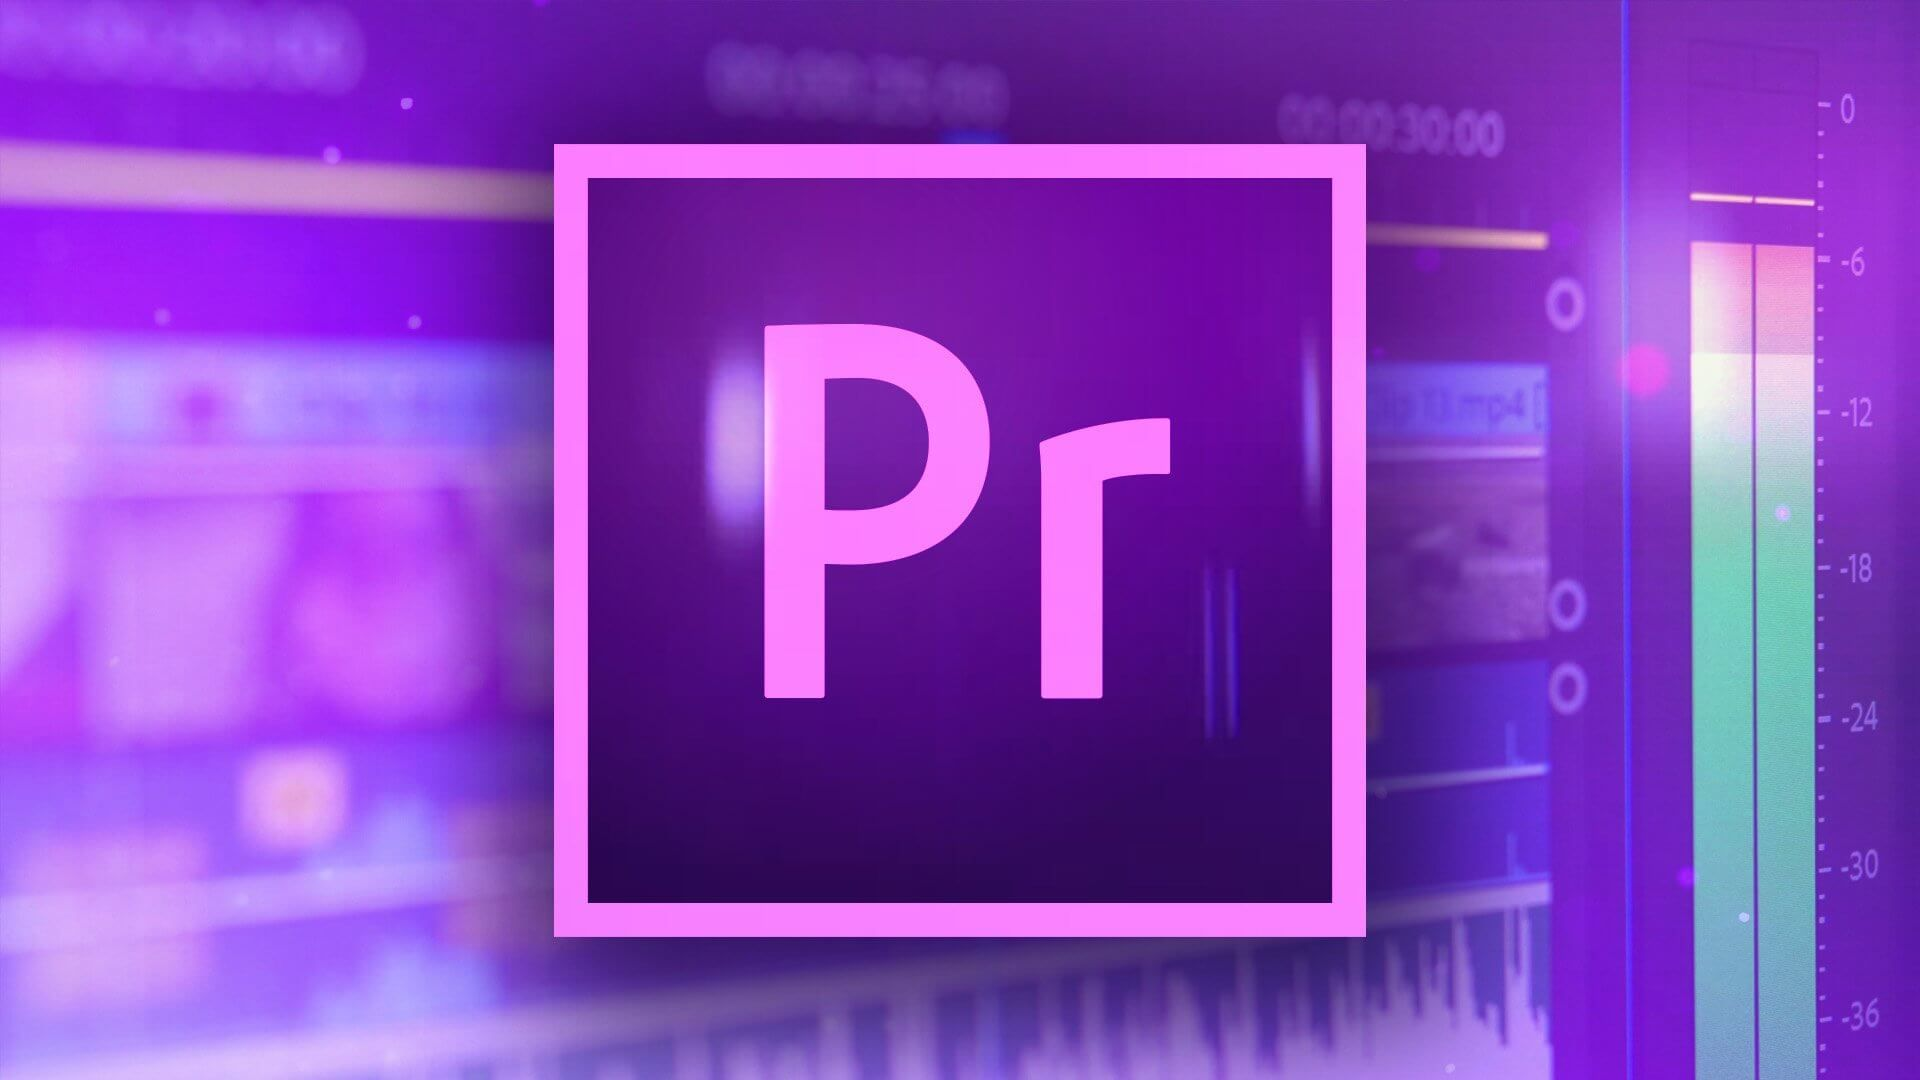 Adobe Premiere Pro CC Course- Learn How To Use Premiere Pro Like A Ninja